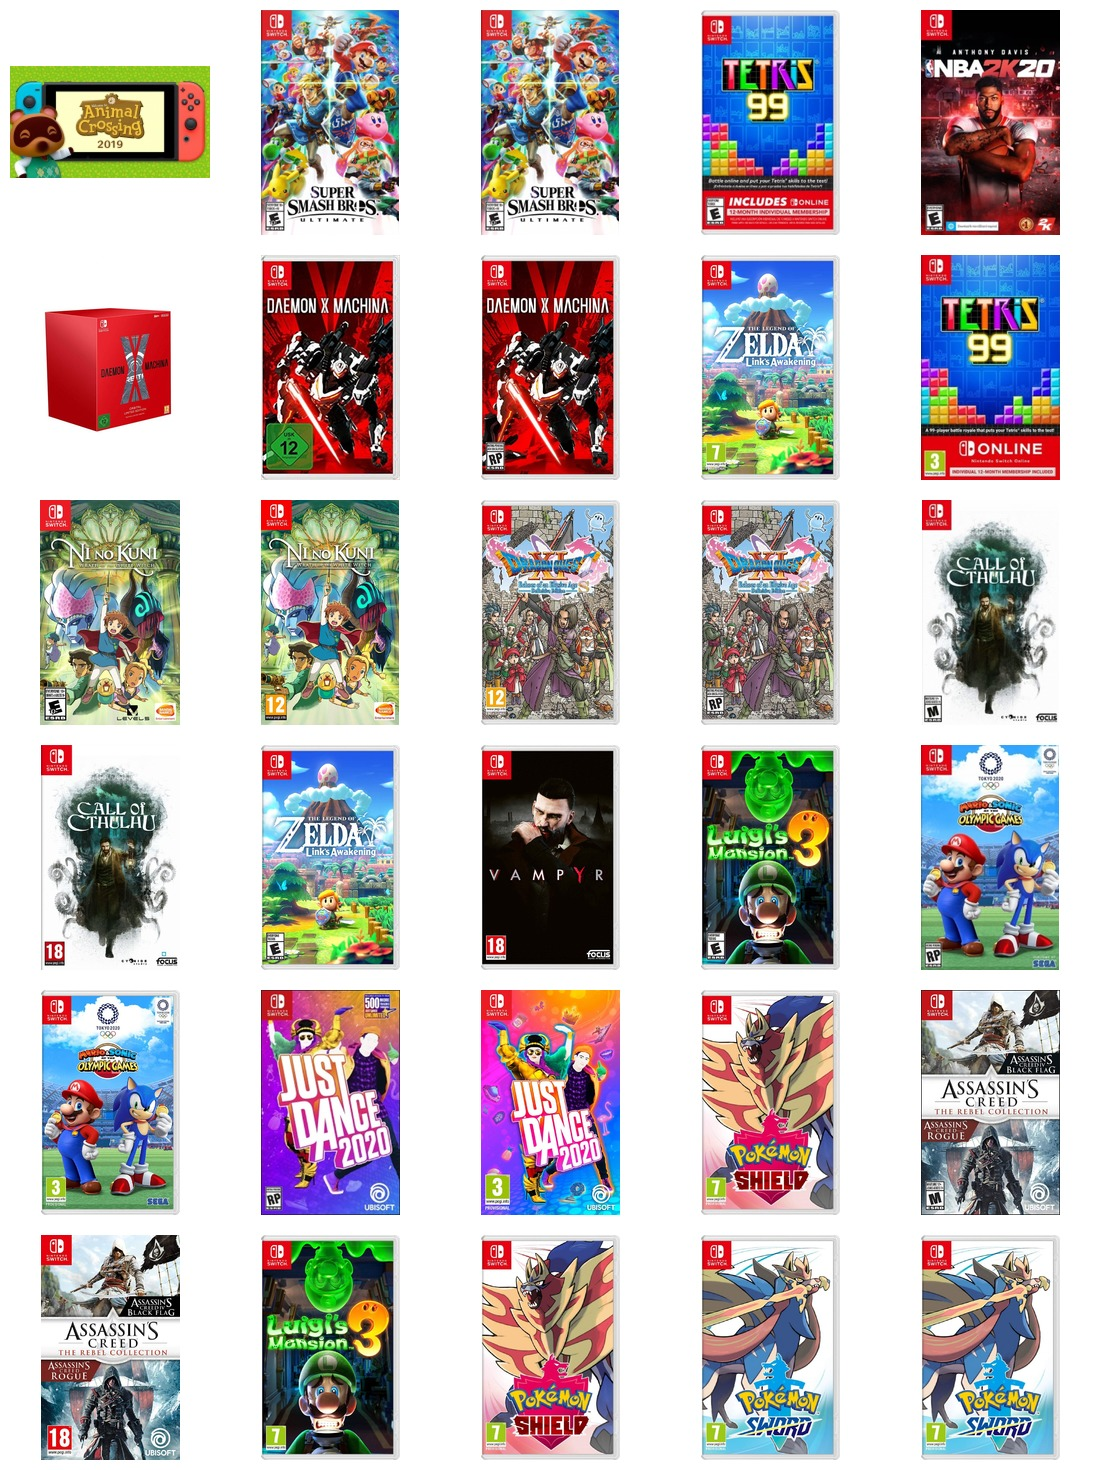 Switch Games Nintendo Direct 09-04-2019